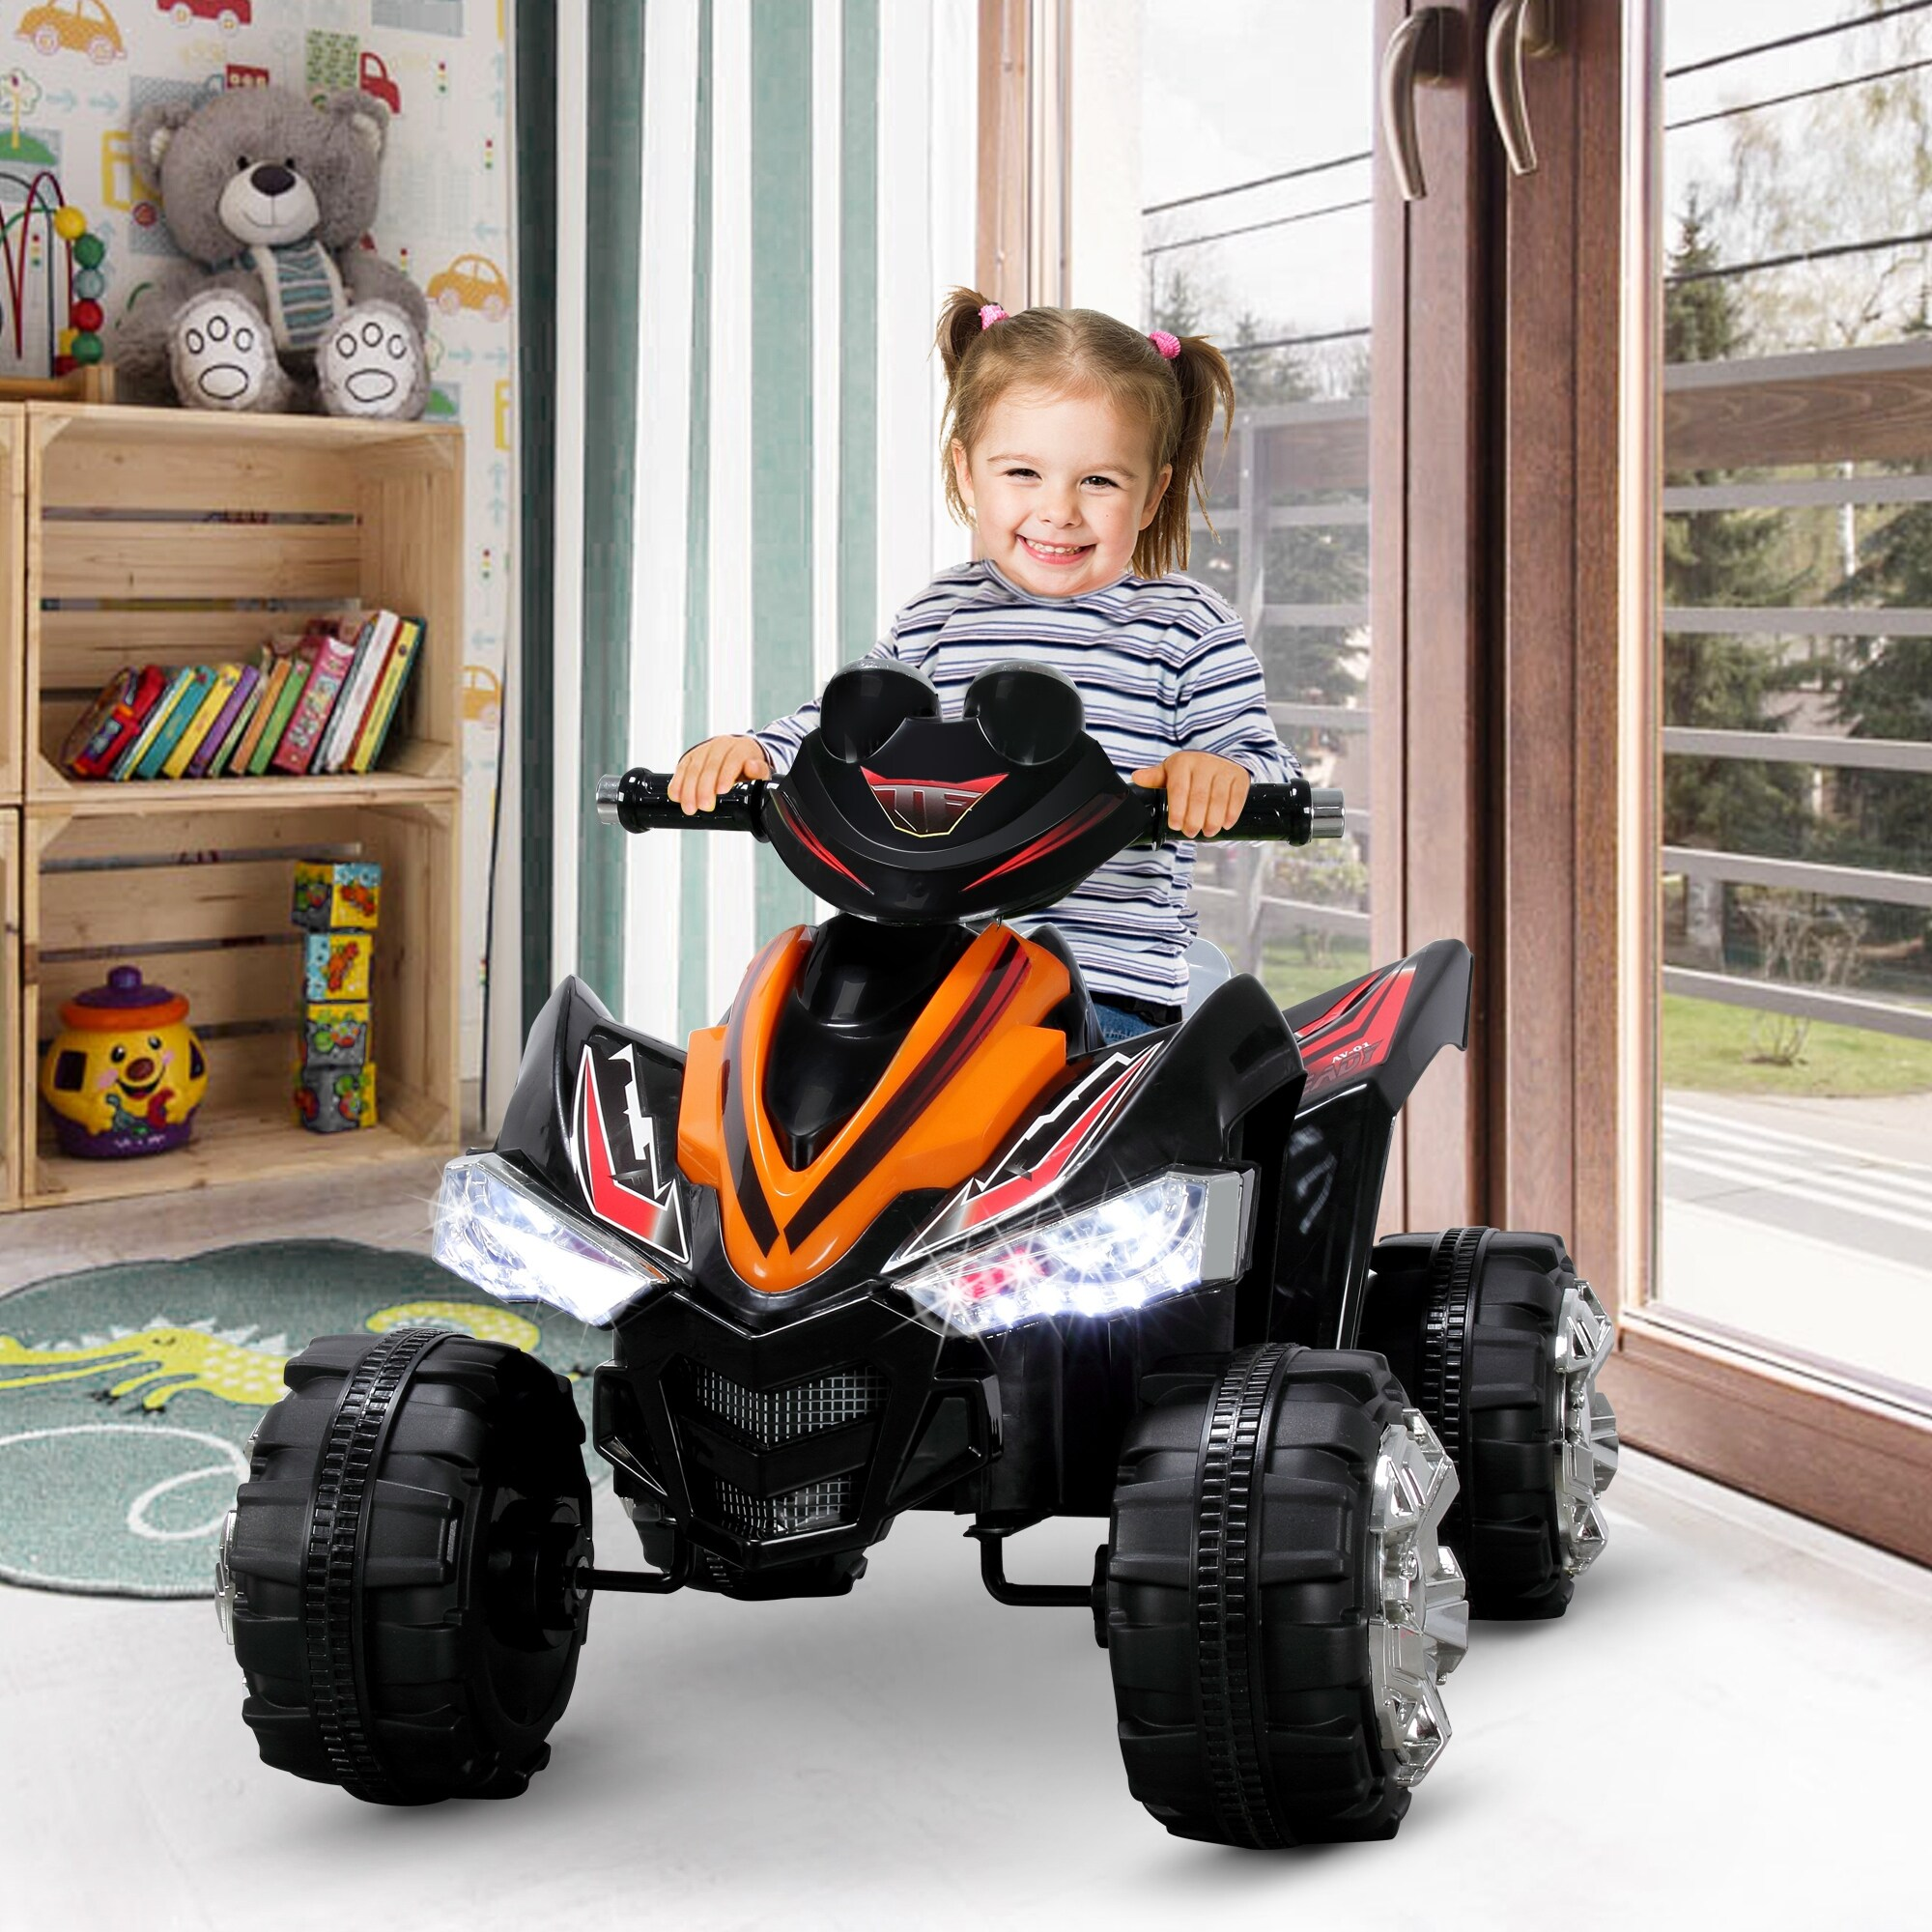 12v Led Quad Kidzone 12v Battery Powered Ride On Atv Quad Electric Led Headlights Toy Car For Kids 3 6 Years Old Orange